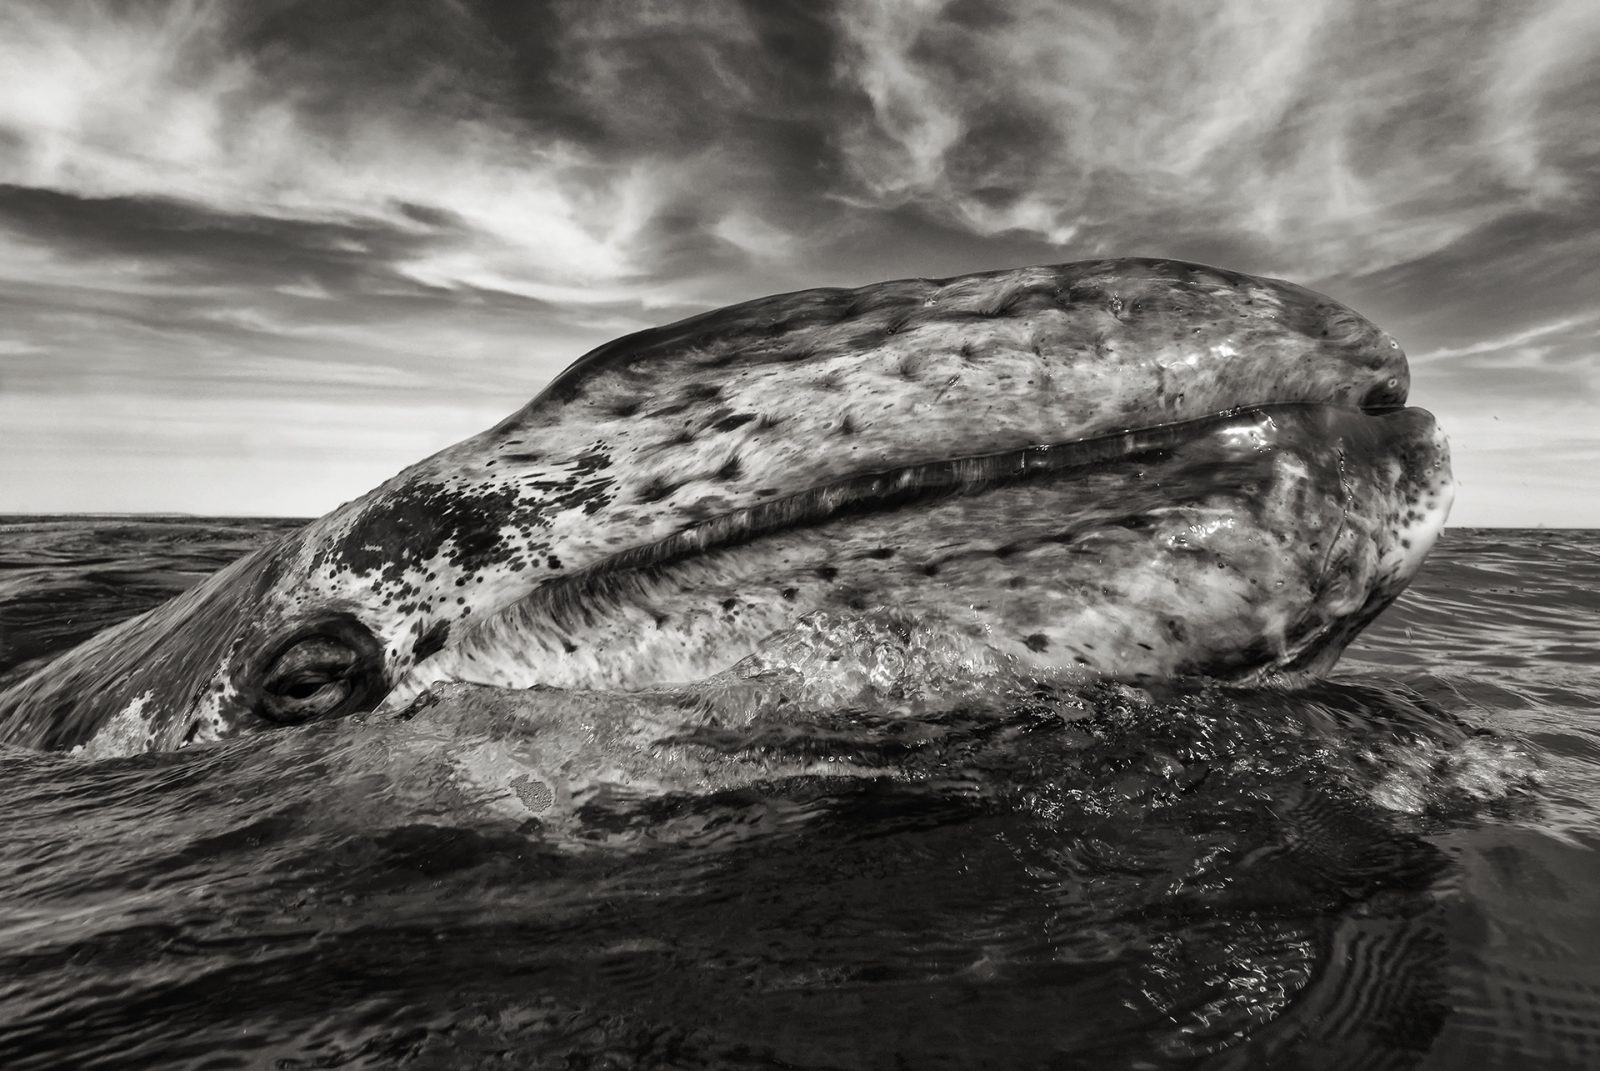 Gray whale (eschrichtius robustus) A gray whale head appears out of the water.